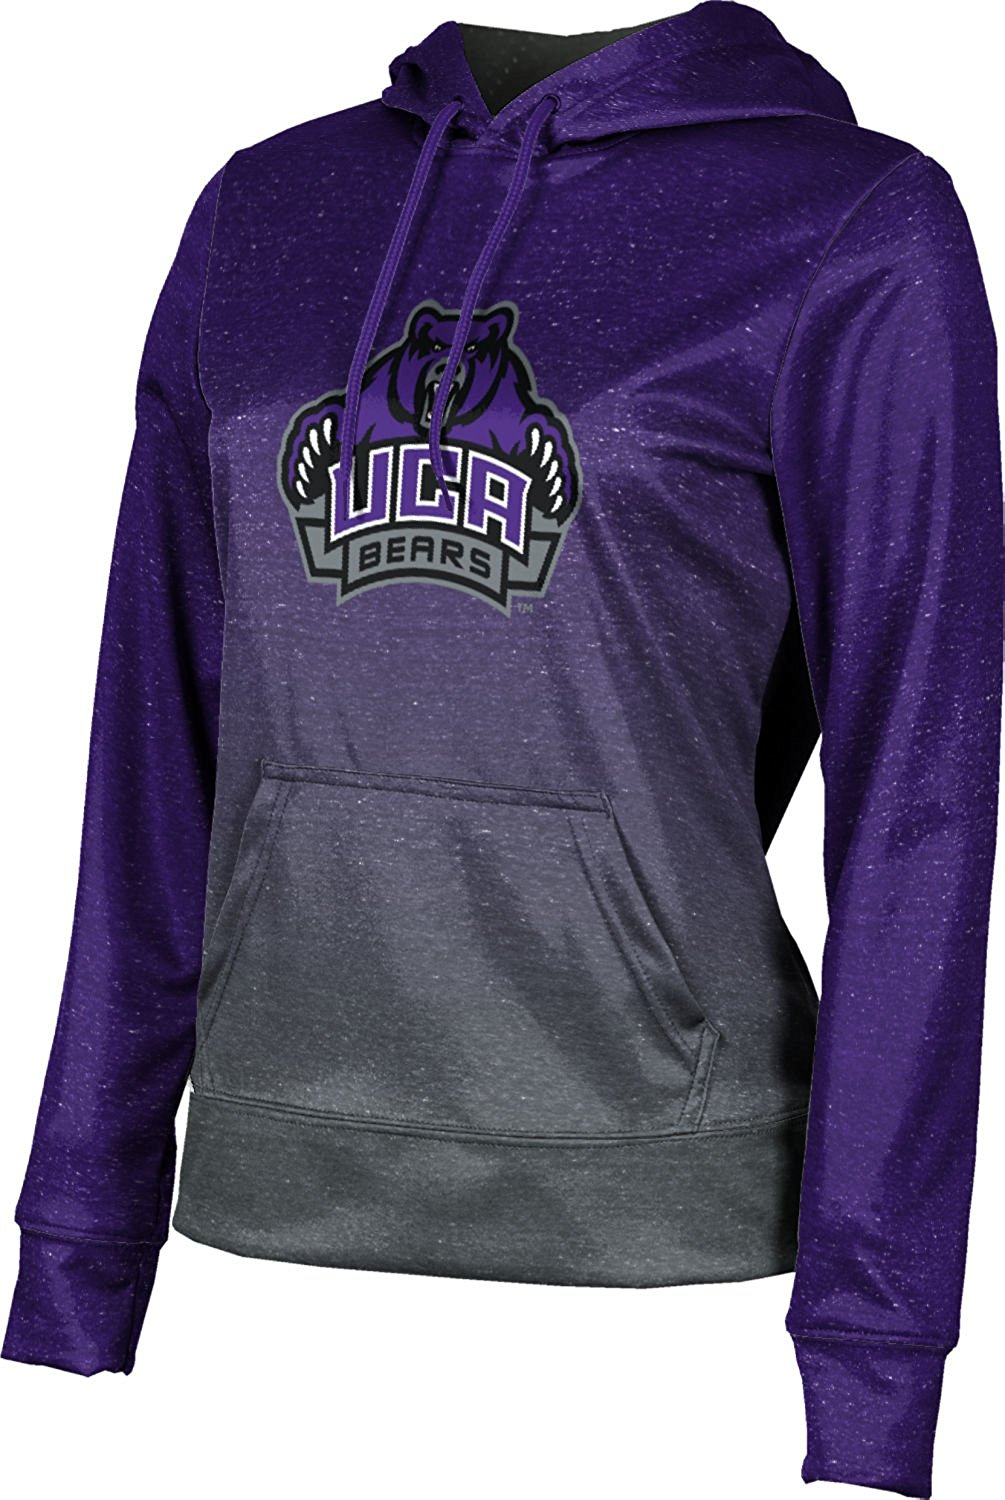 ProSphere Girls' University of Central Arkansas Ombre Pullover Hoodie